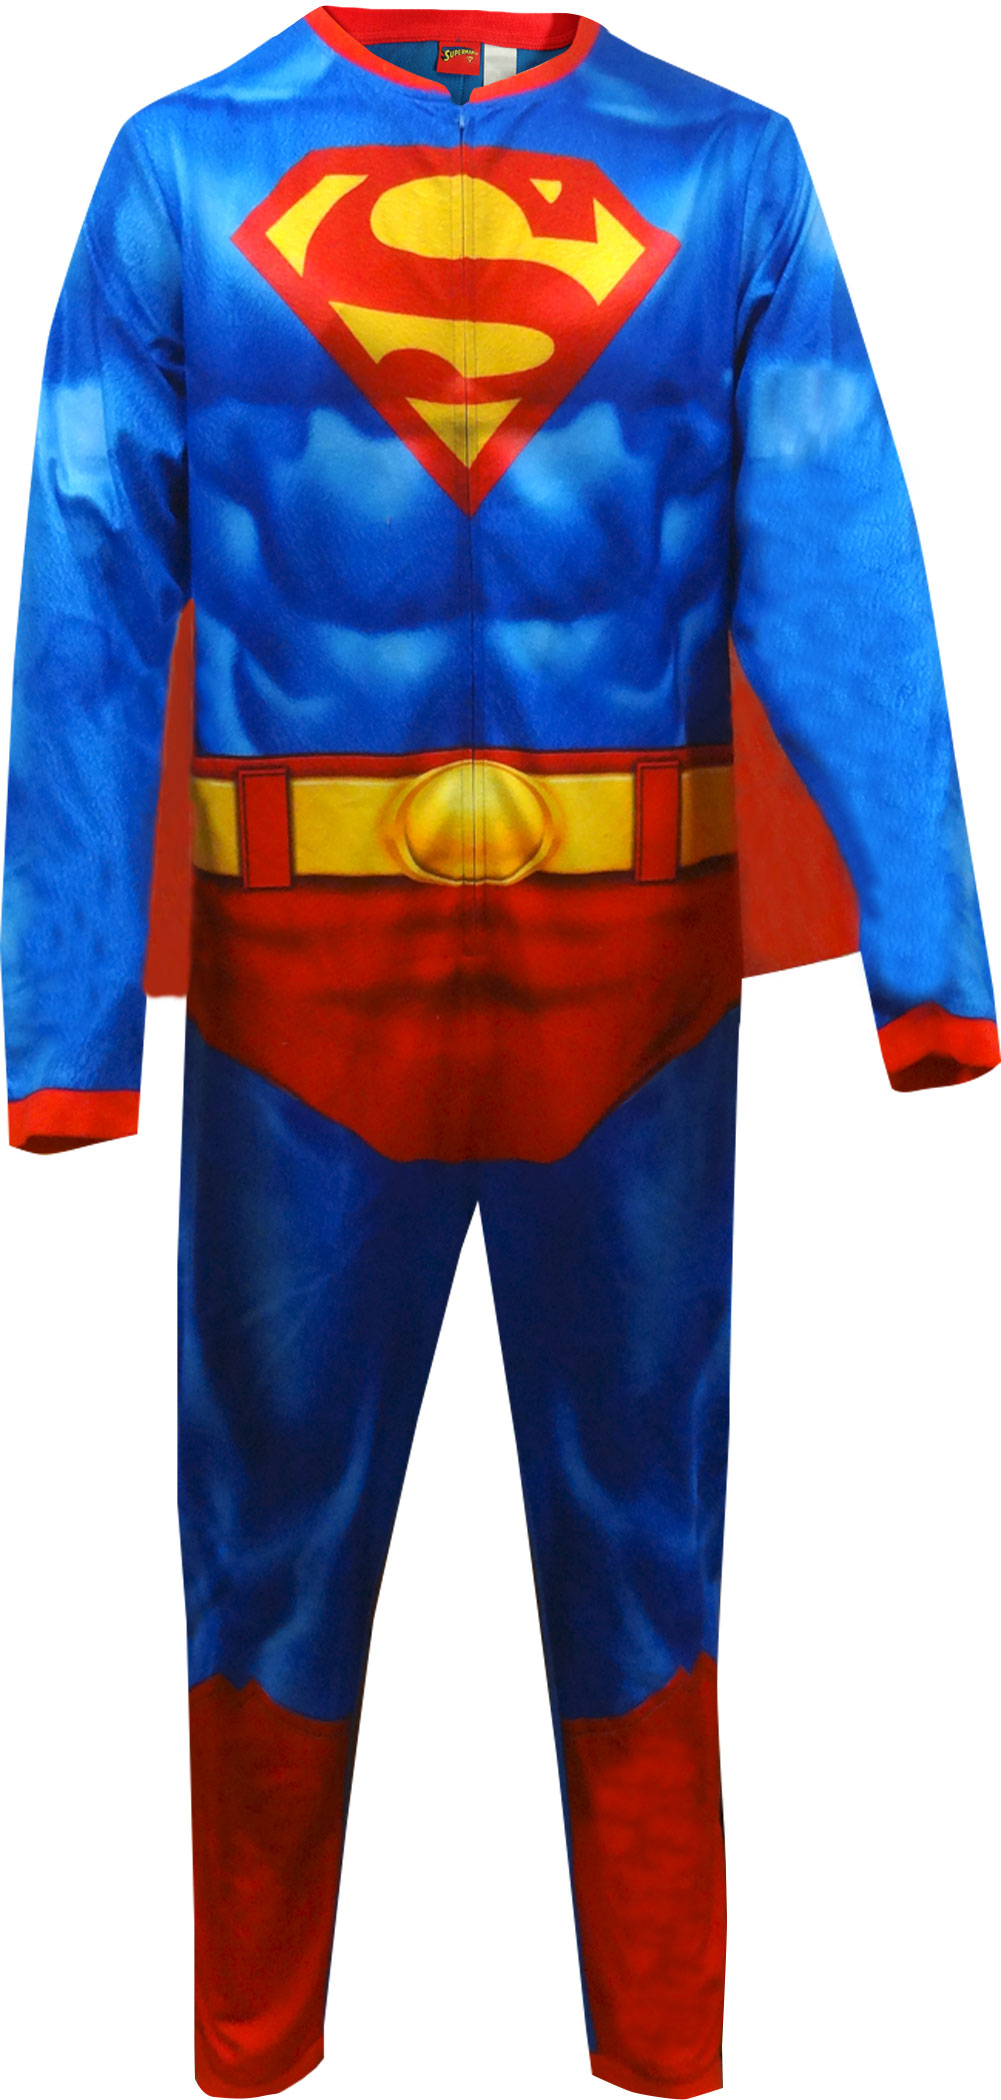 Our Superman Underwear and Pajamas are perfect for lounging and low-impact crime-fighting. If you're looking for underwear that resides beneath one's singlet, then pick up a pair of Superman boxer shorts, briefs, or boxer briefs.